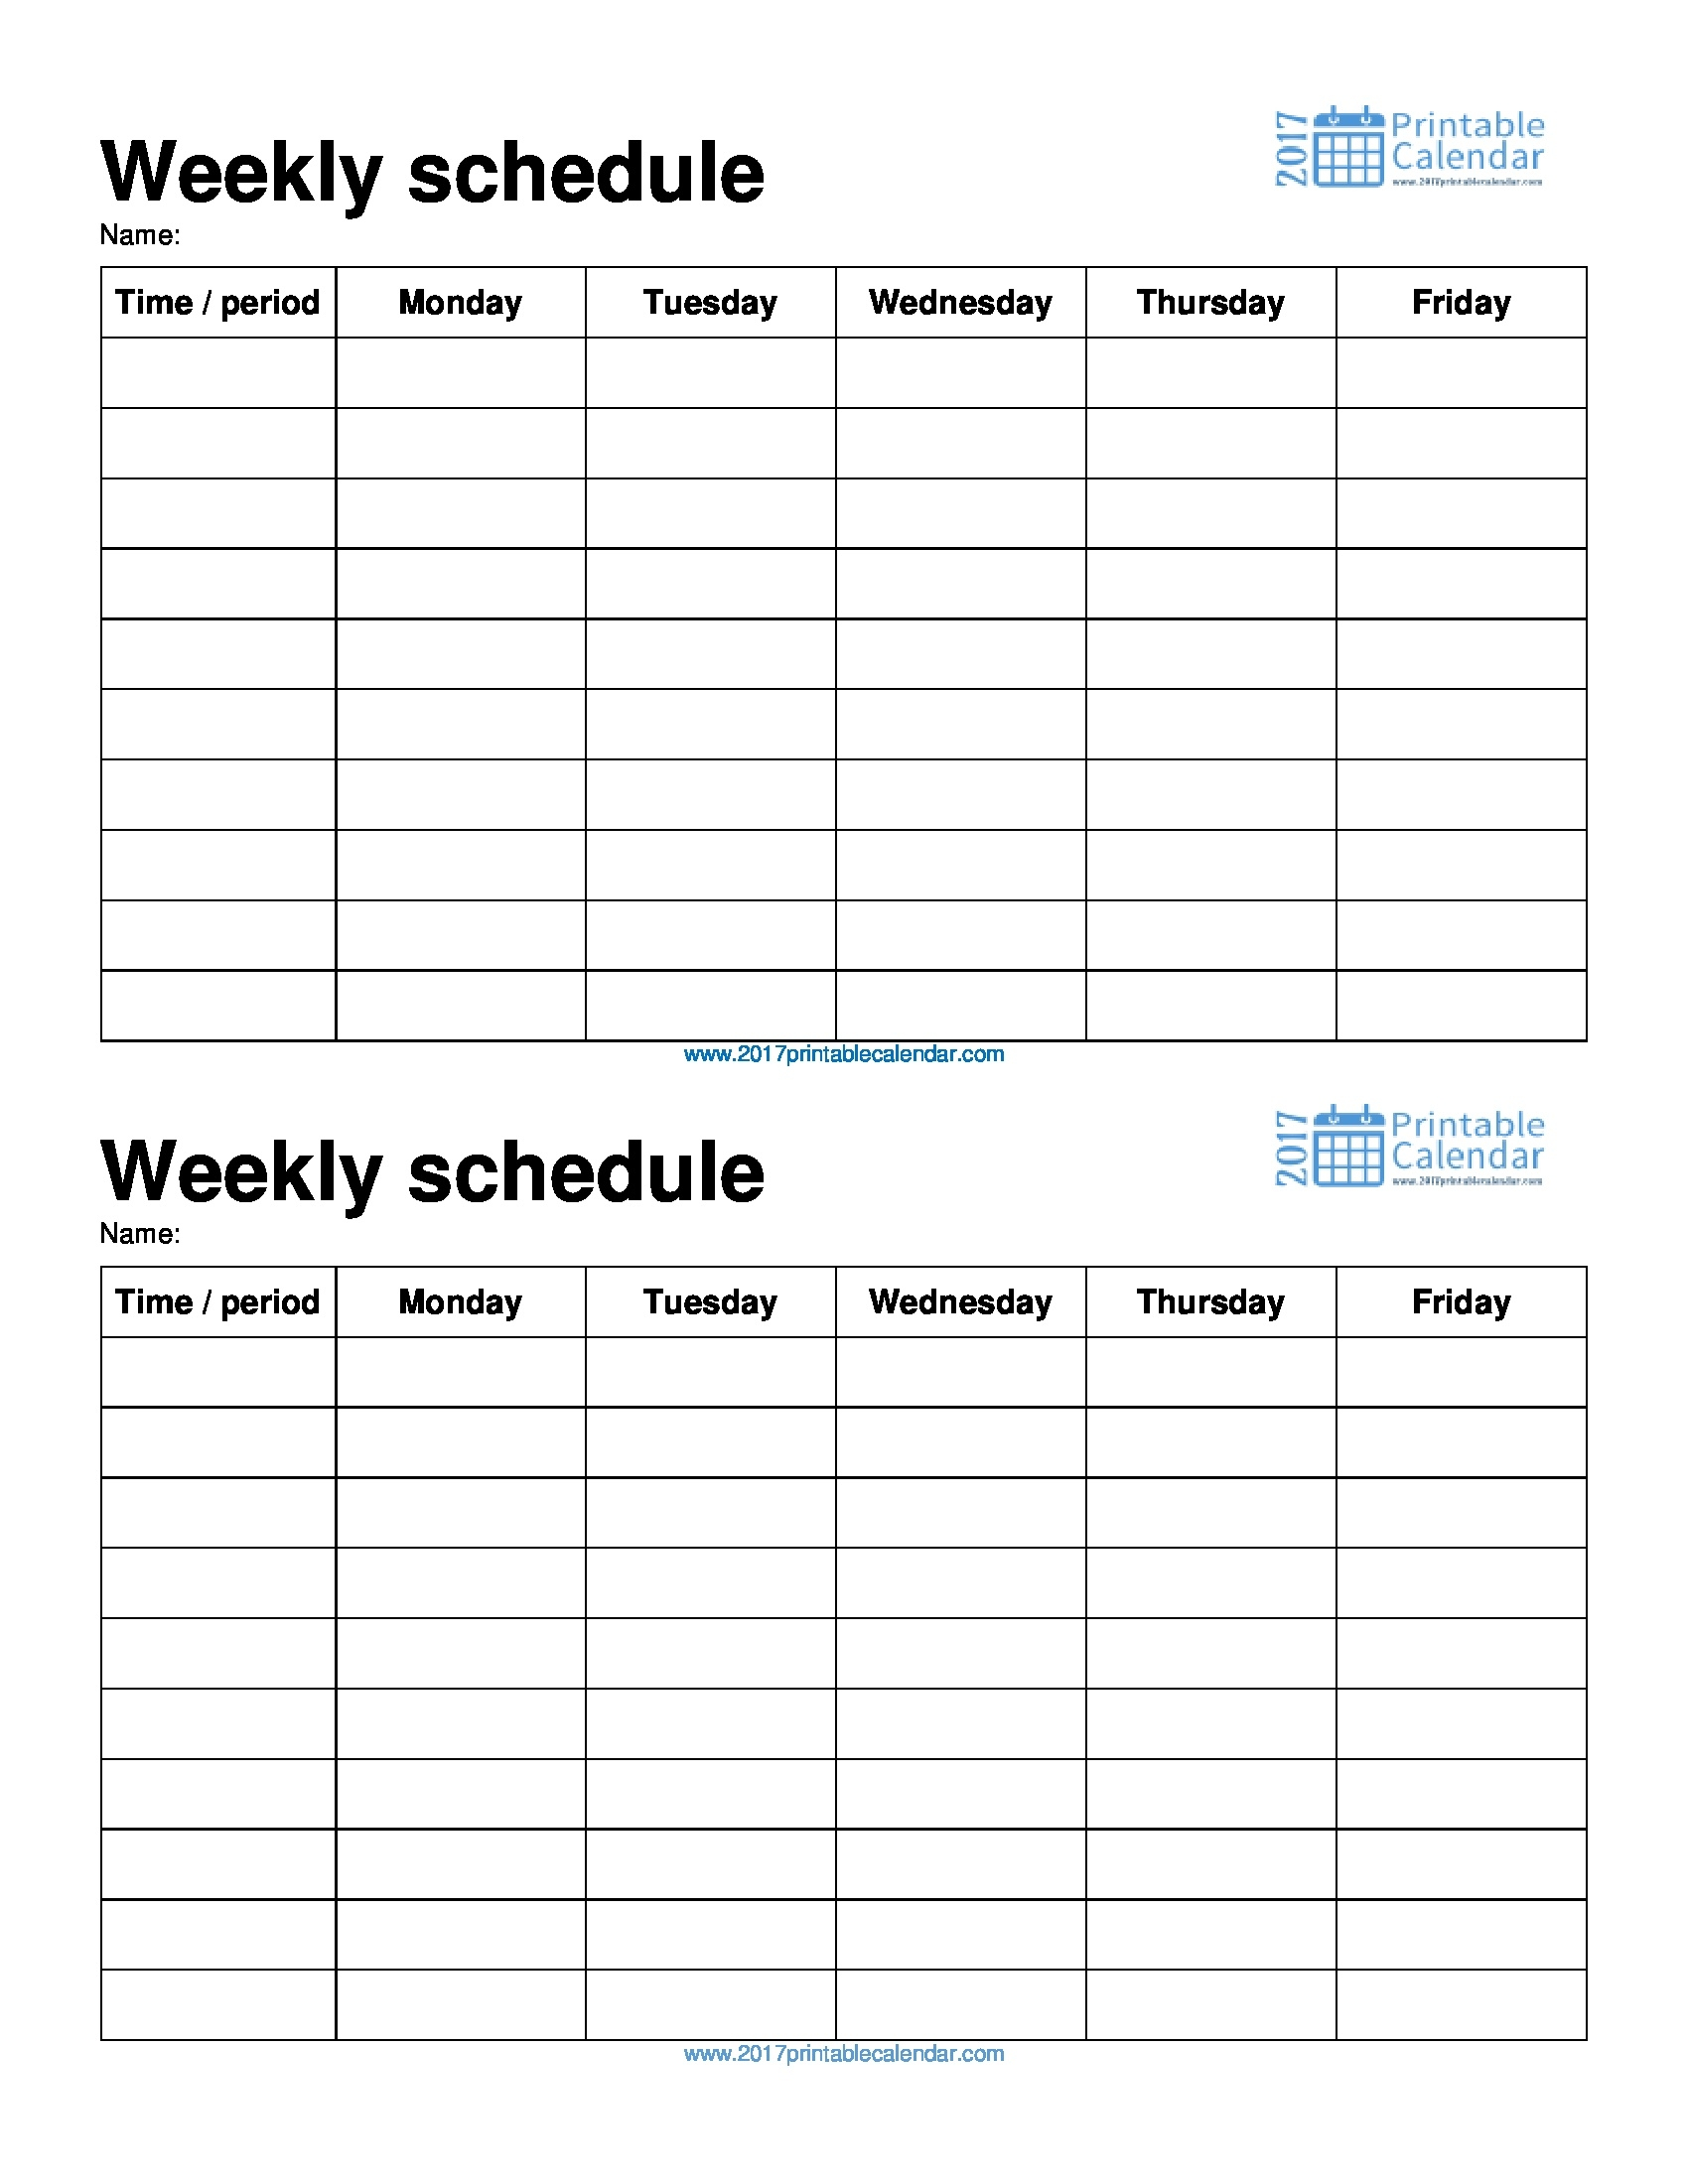 Monday Through Friday Printable Weekly Schedule - Yeniscale.co  Monday Though Friday Timed Schedule